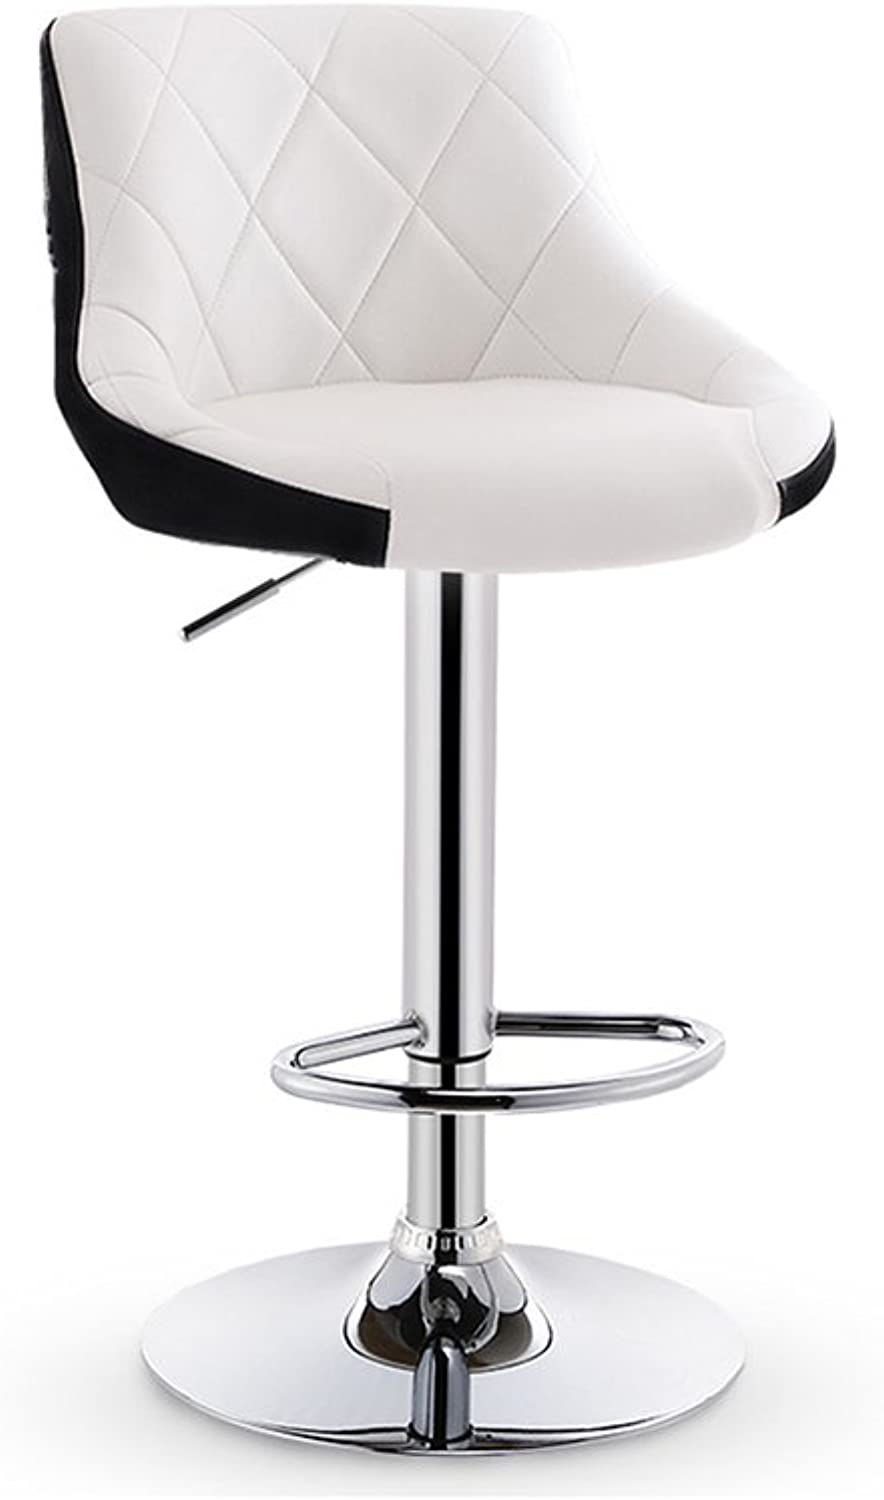 White Swivel Bar Chair with Leatherette Exterior and Backrest Kitchen Breakfast Bar Stools with Chromed Framework Lift Adjustable High Stool for Kitchens Soft Padded Chairs (Size   65CM)